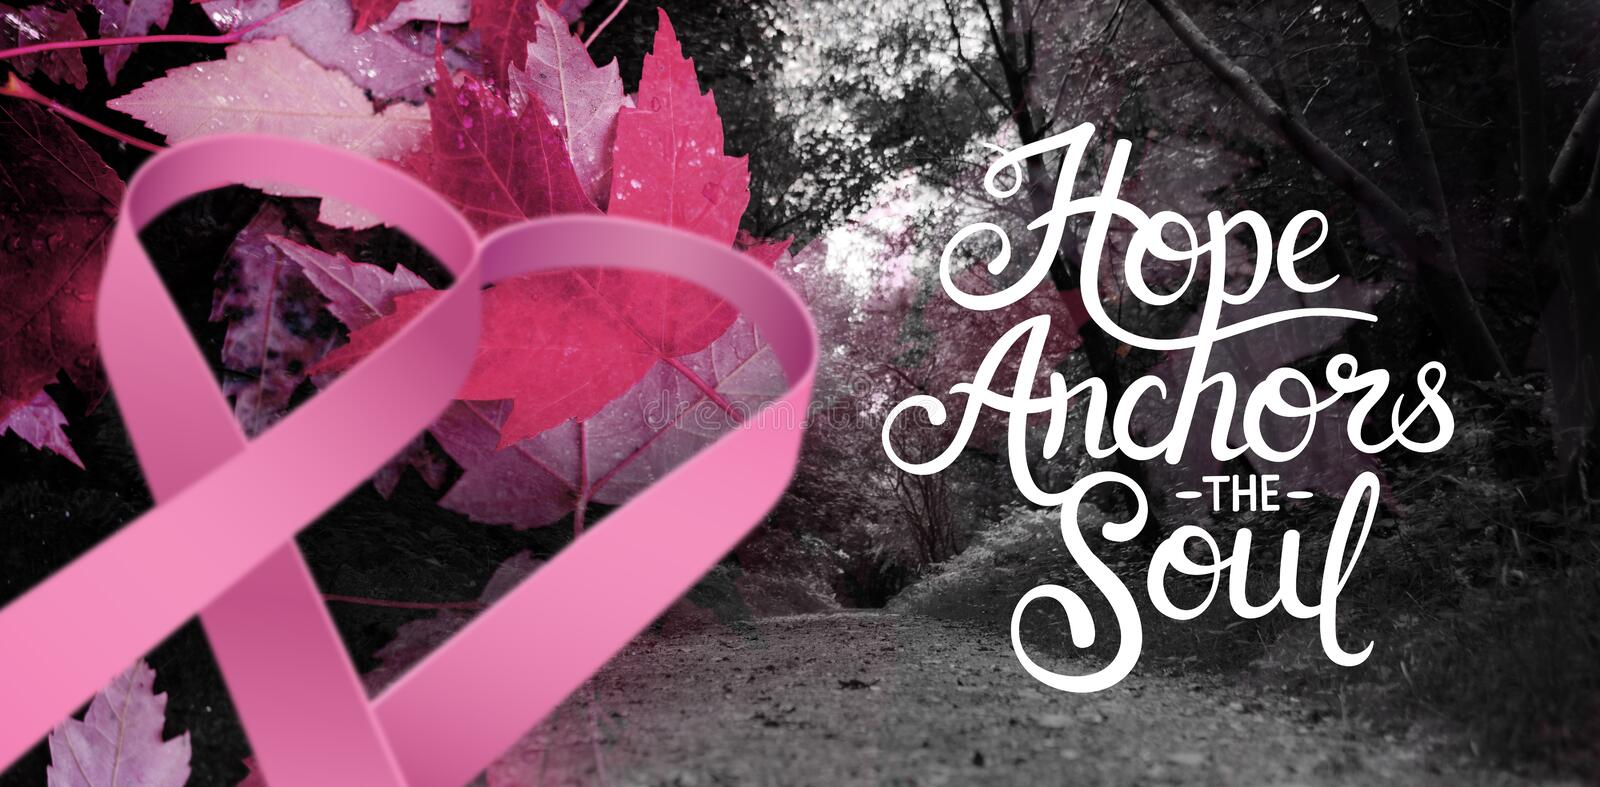 Composite image of breast cancer awareness message. Breast cancer awareness message against maple leaves fallen on sidewalk stock photos